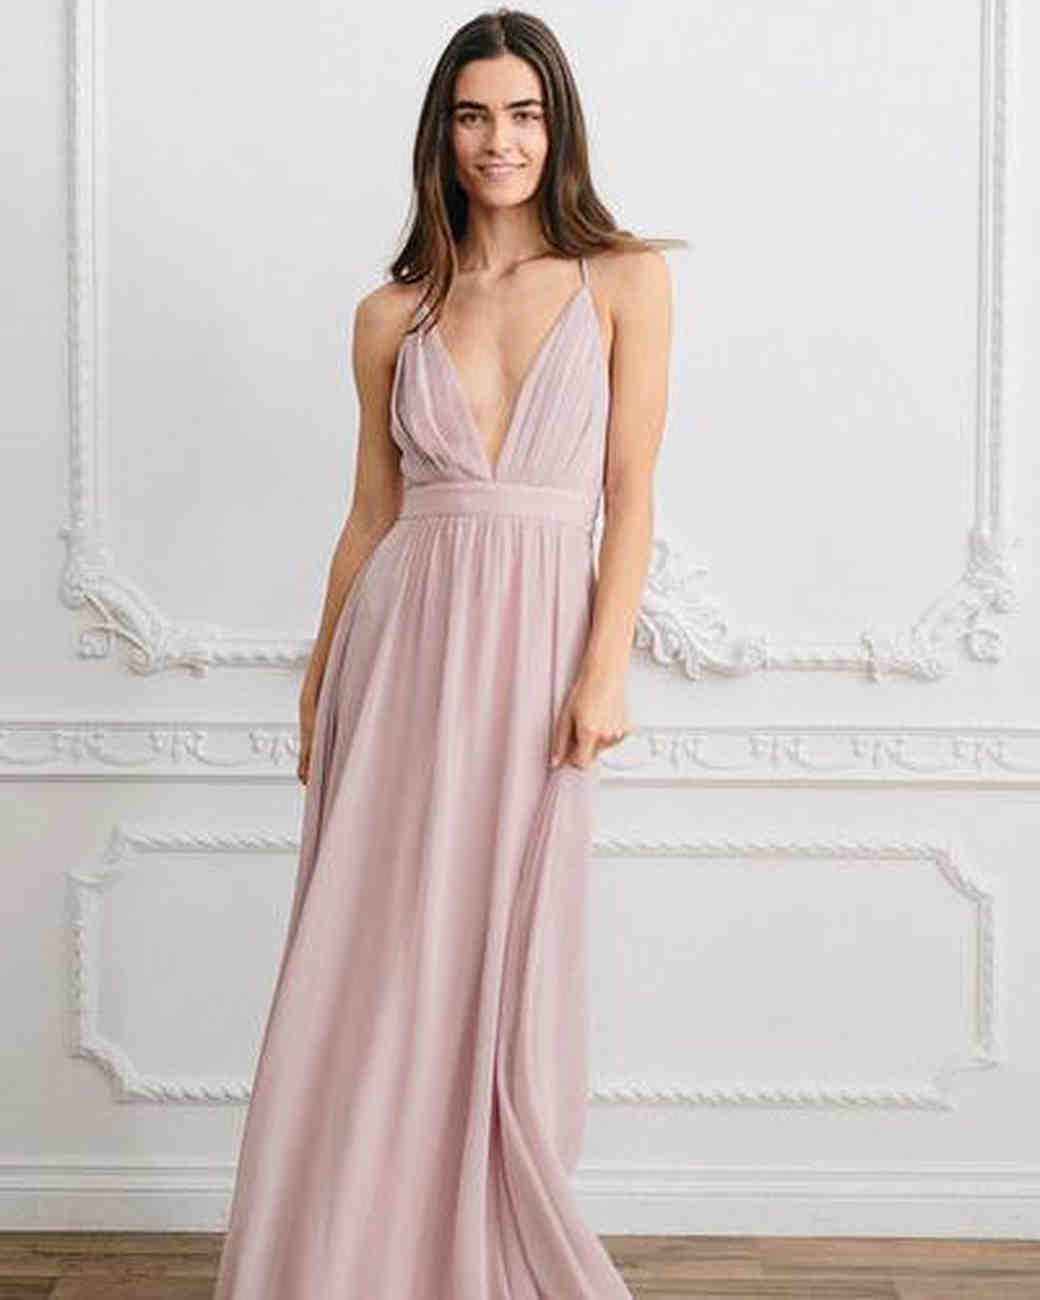 Spaghetti Strap Bridesmaid Dress